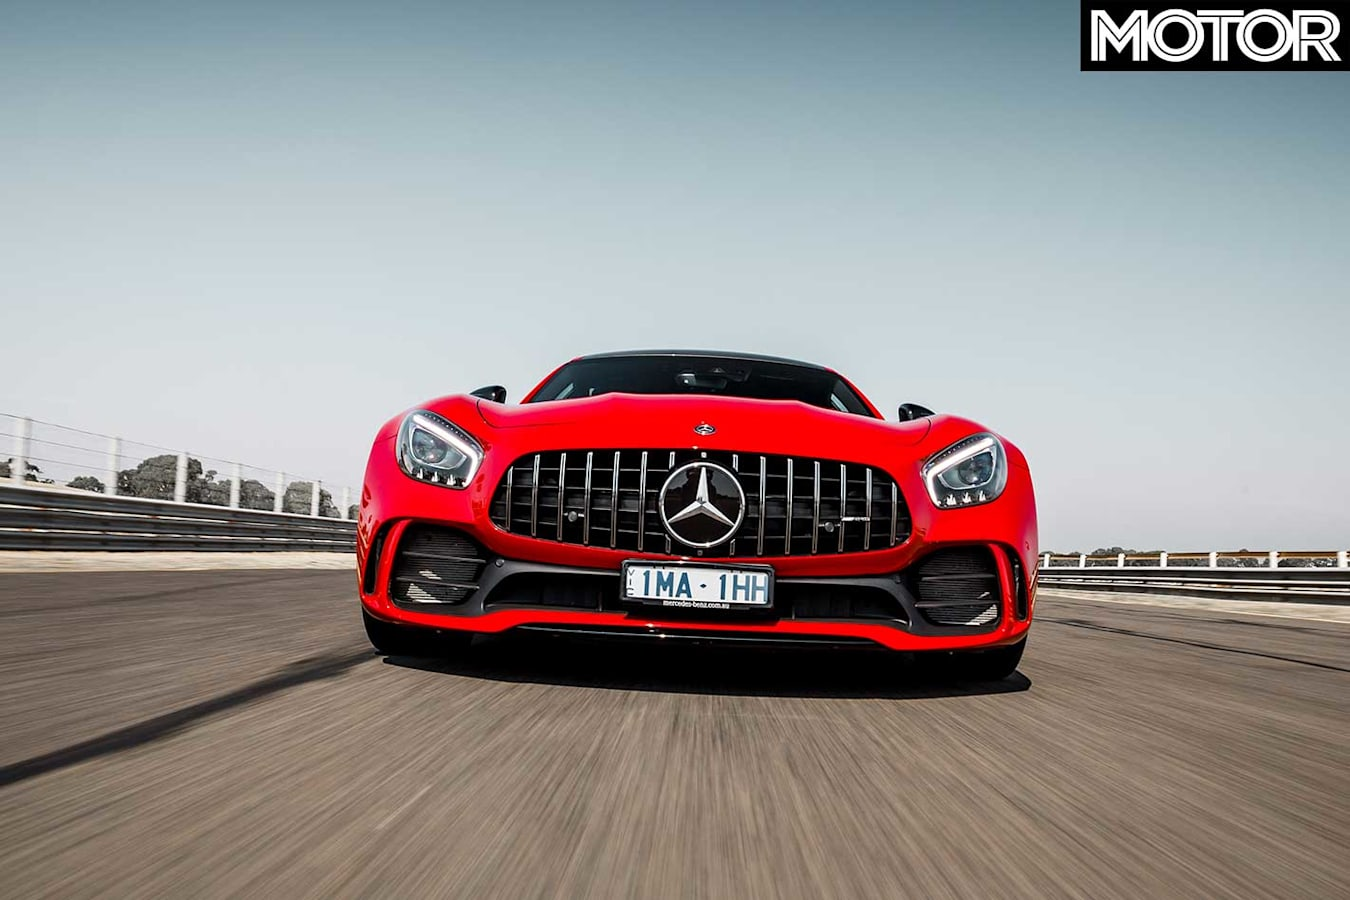 2019 Mercedes AMG GT R 12 Hours Review The Strip Drag Times Jpg